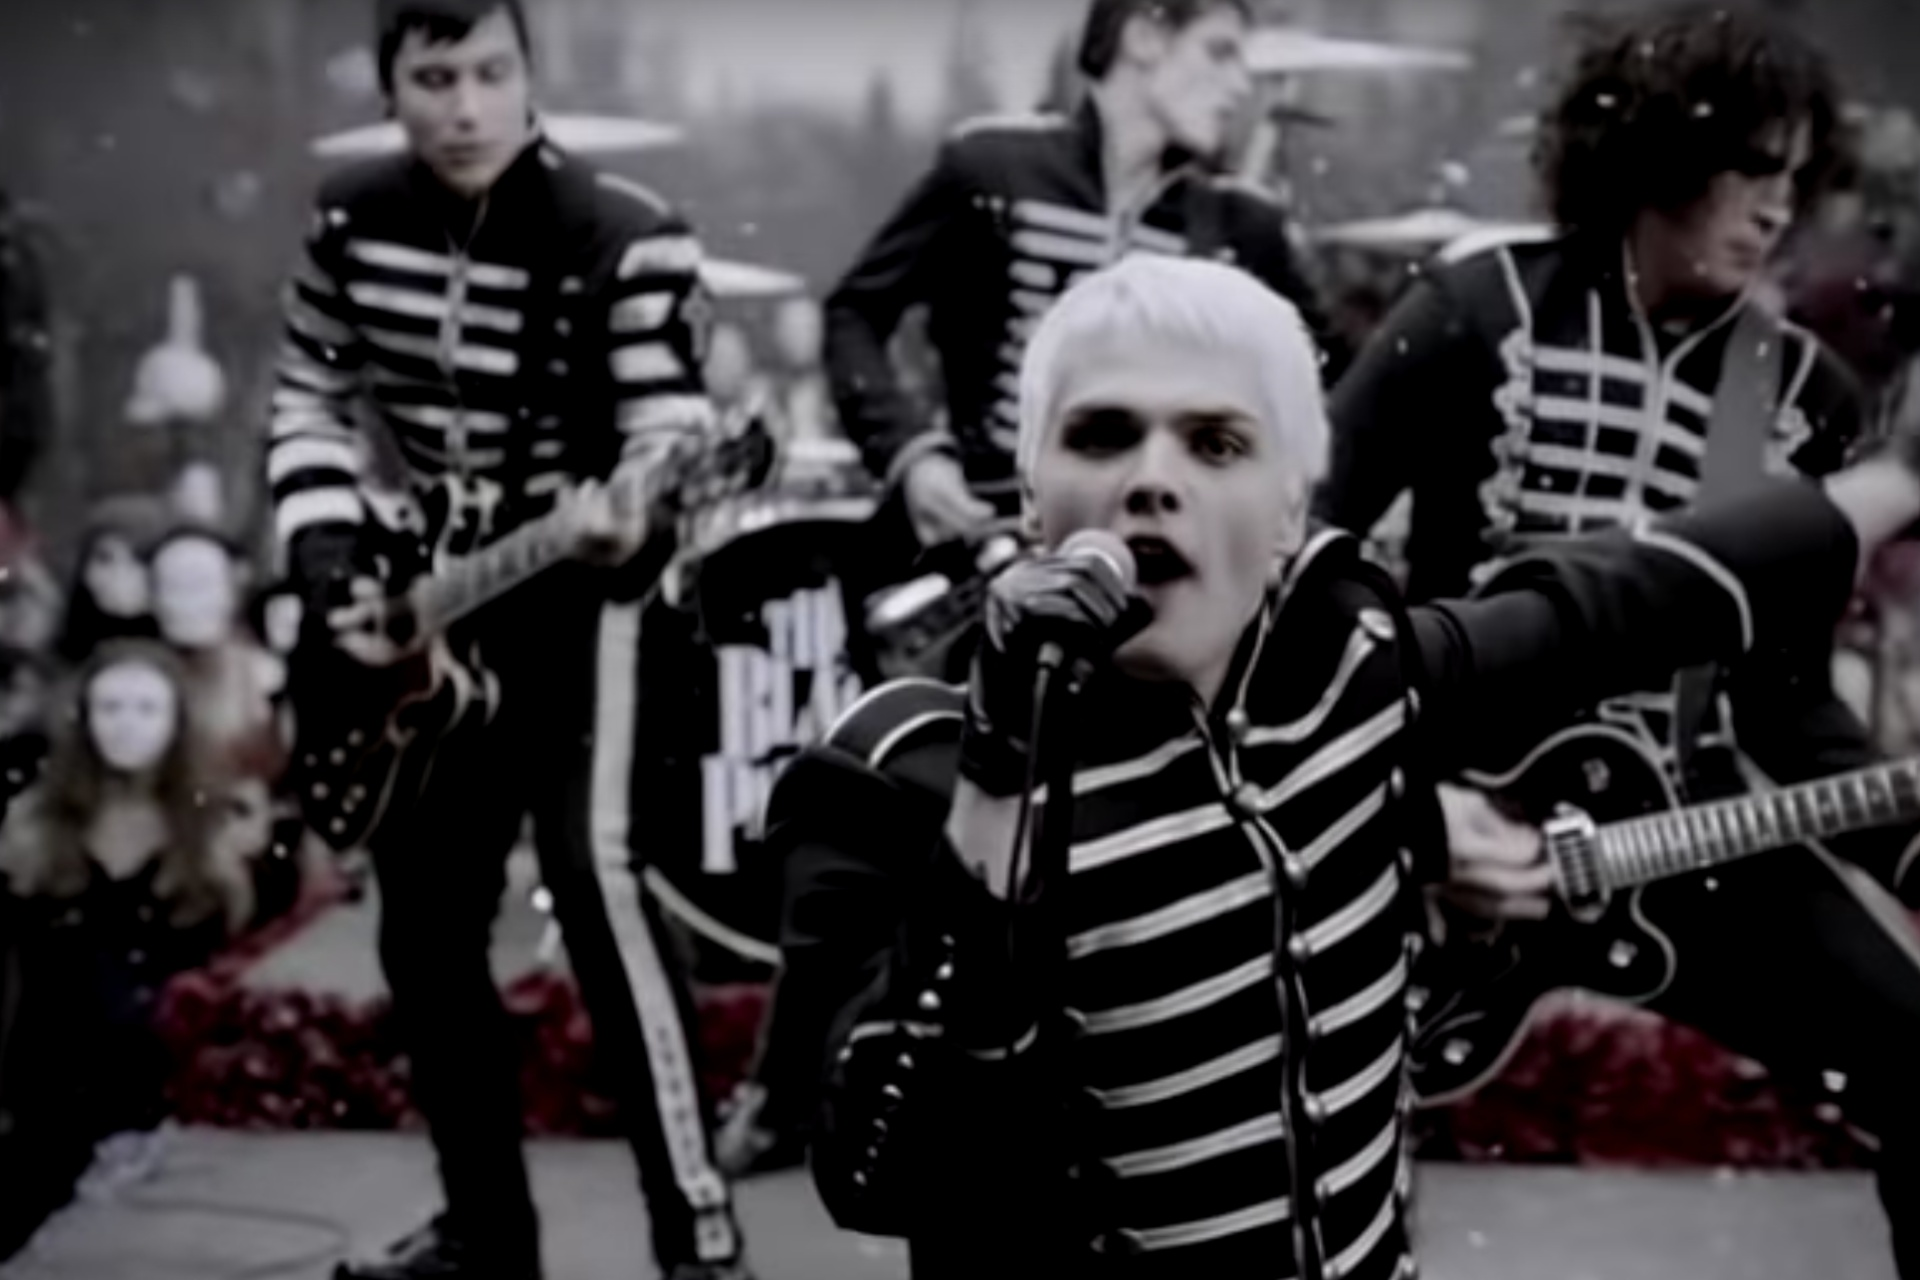 A Love Letter To My Chemical Romance And The Emo Kids We Used To Be